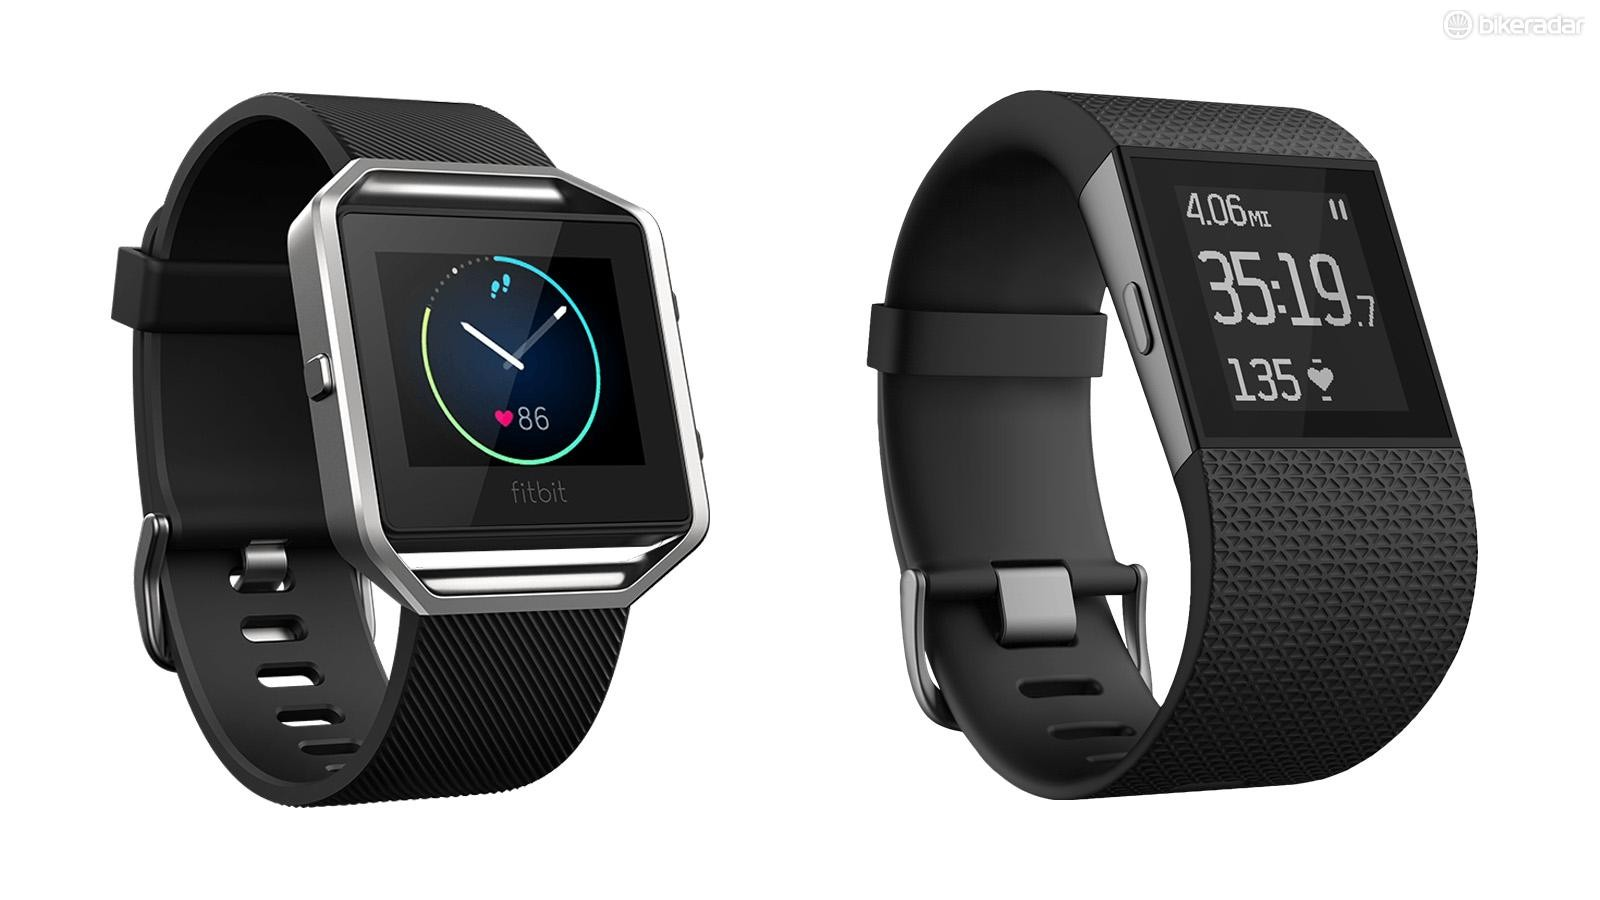 Just launched, the Fitbit Blaze (left) lined up next to the Fitbit Surge (right)